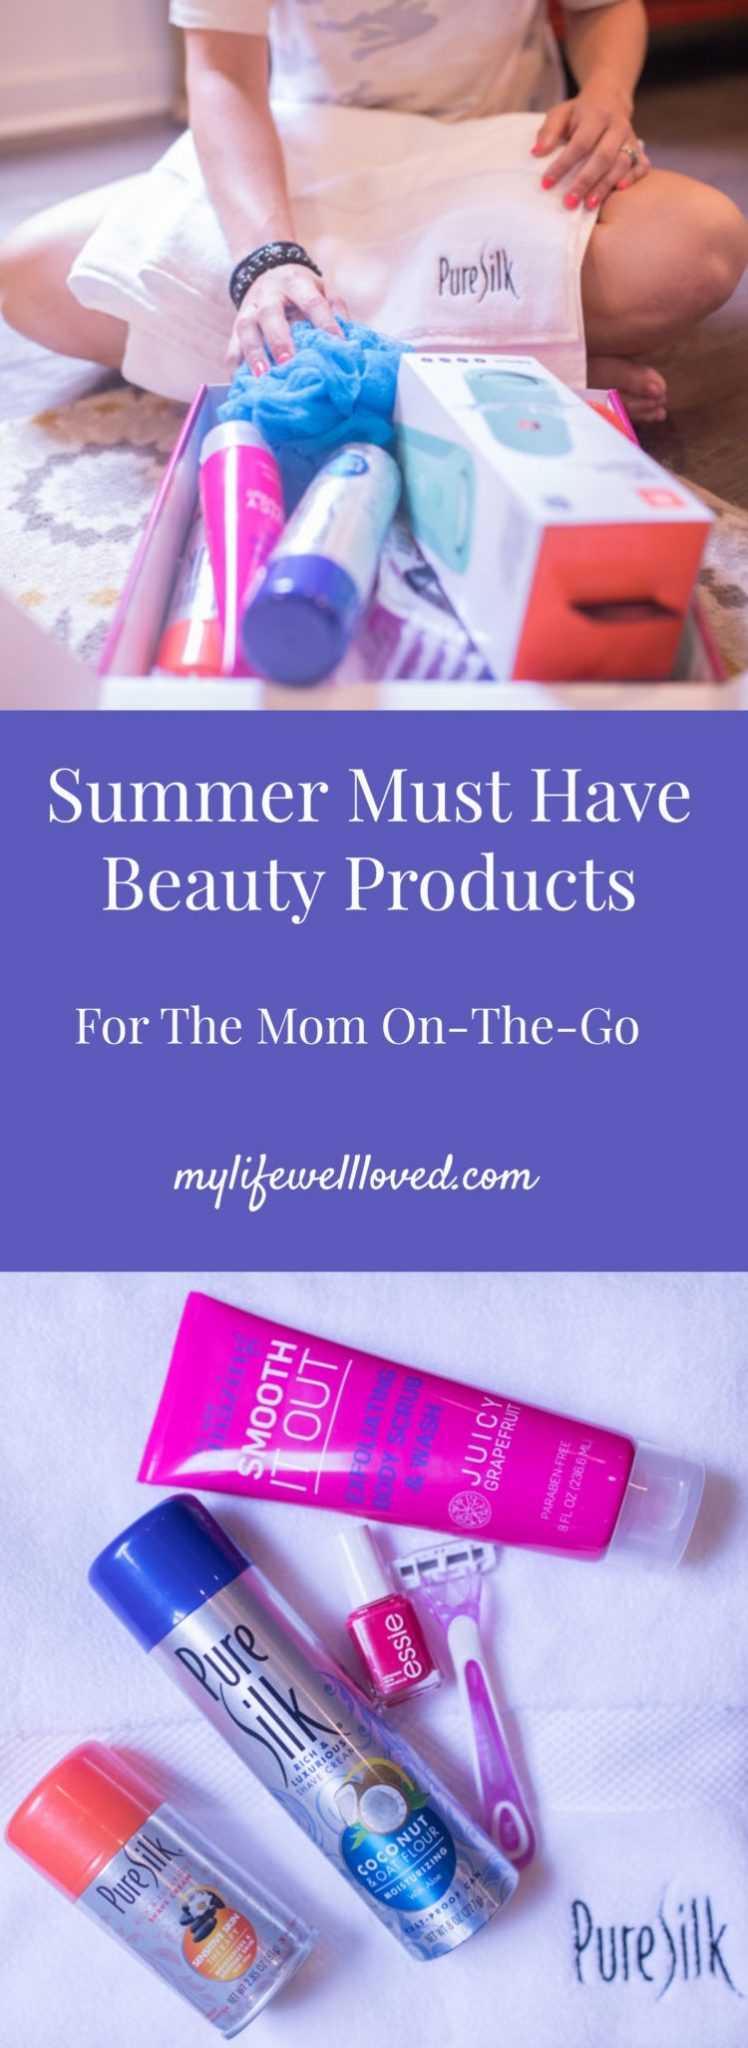 Summer Must Haves // My Life Well Loved #summer #essentials #mom #beauty #fashion